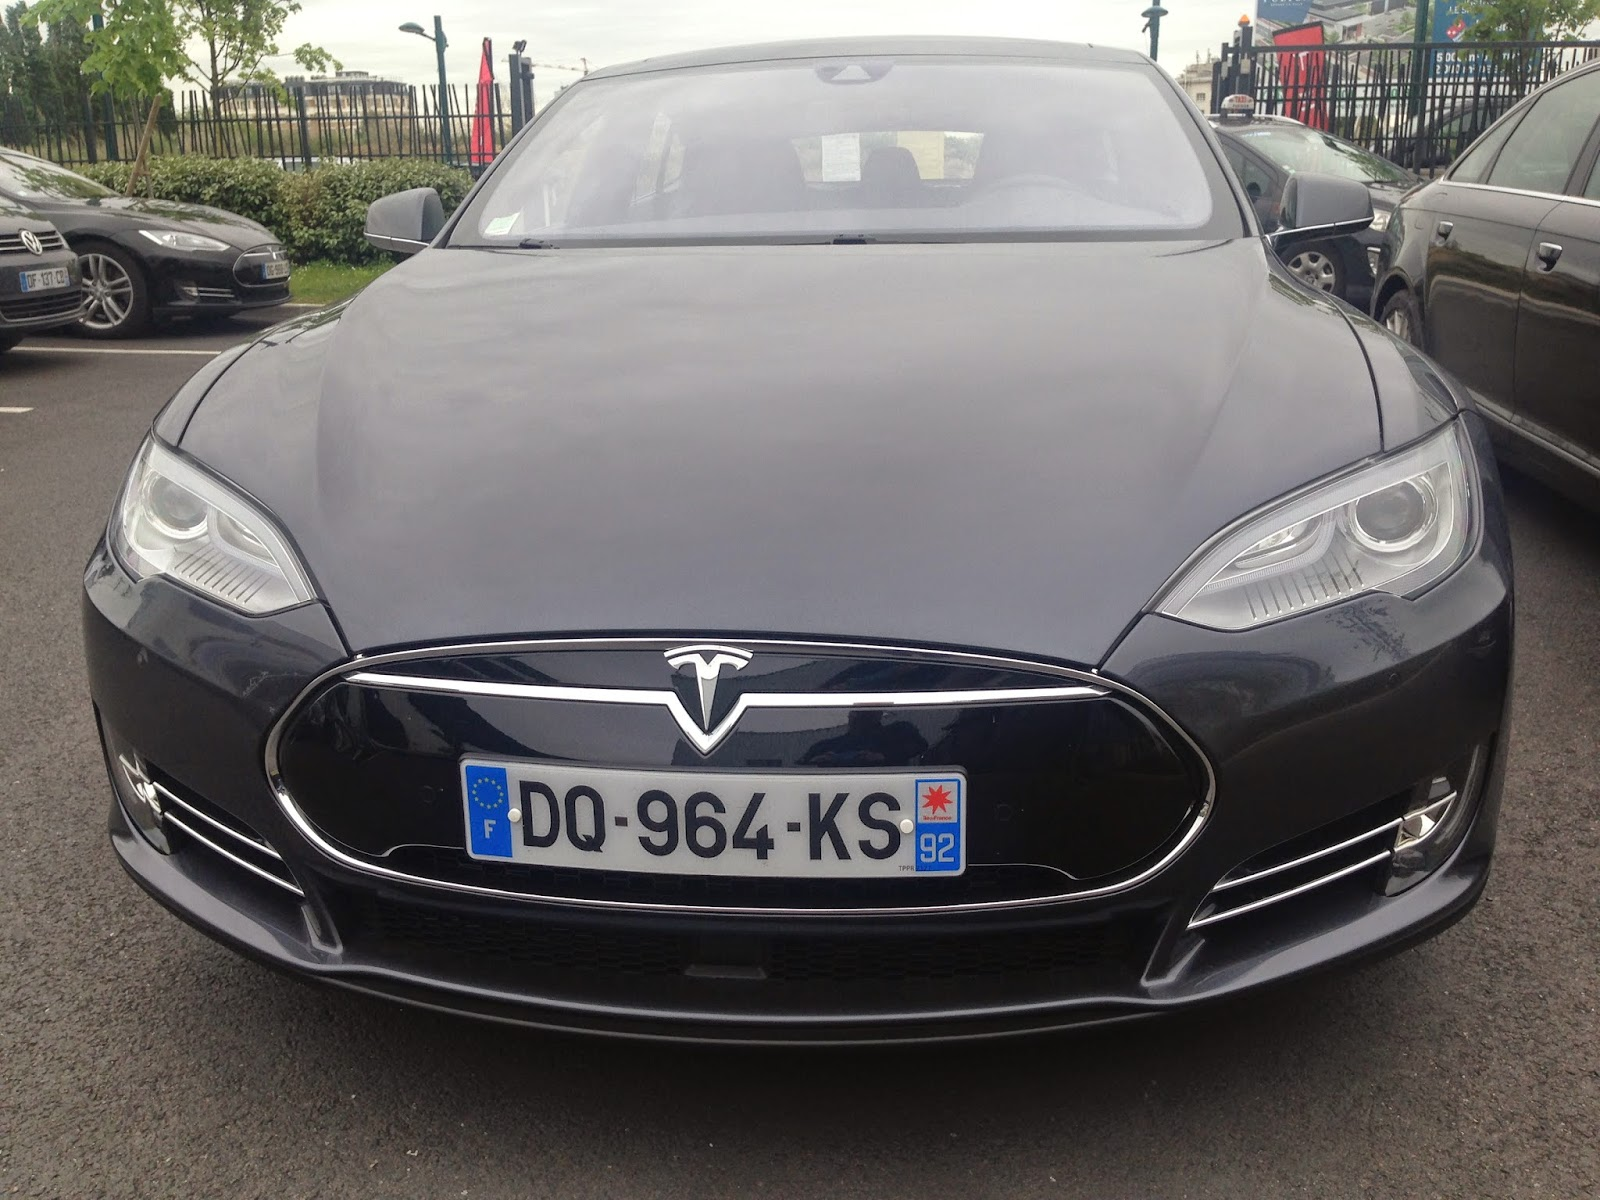 voiture du futur tesla model s dual motor les aides la conduite. Black Bedroom Furniture Sets. Home Design Ideas